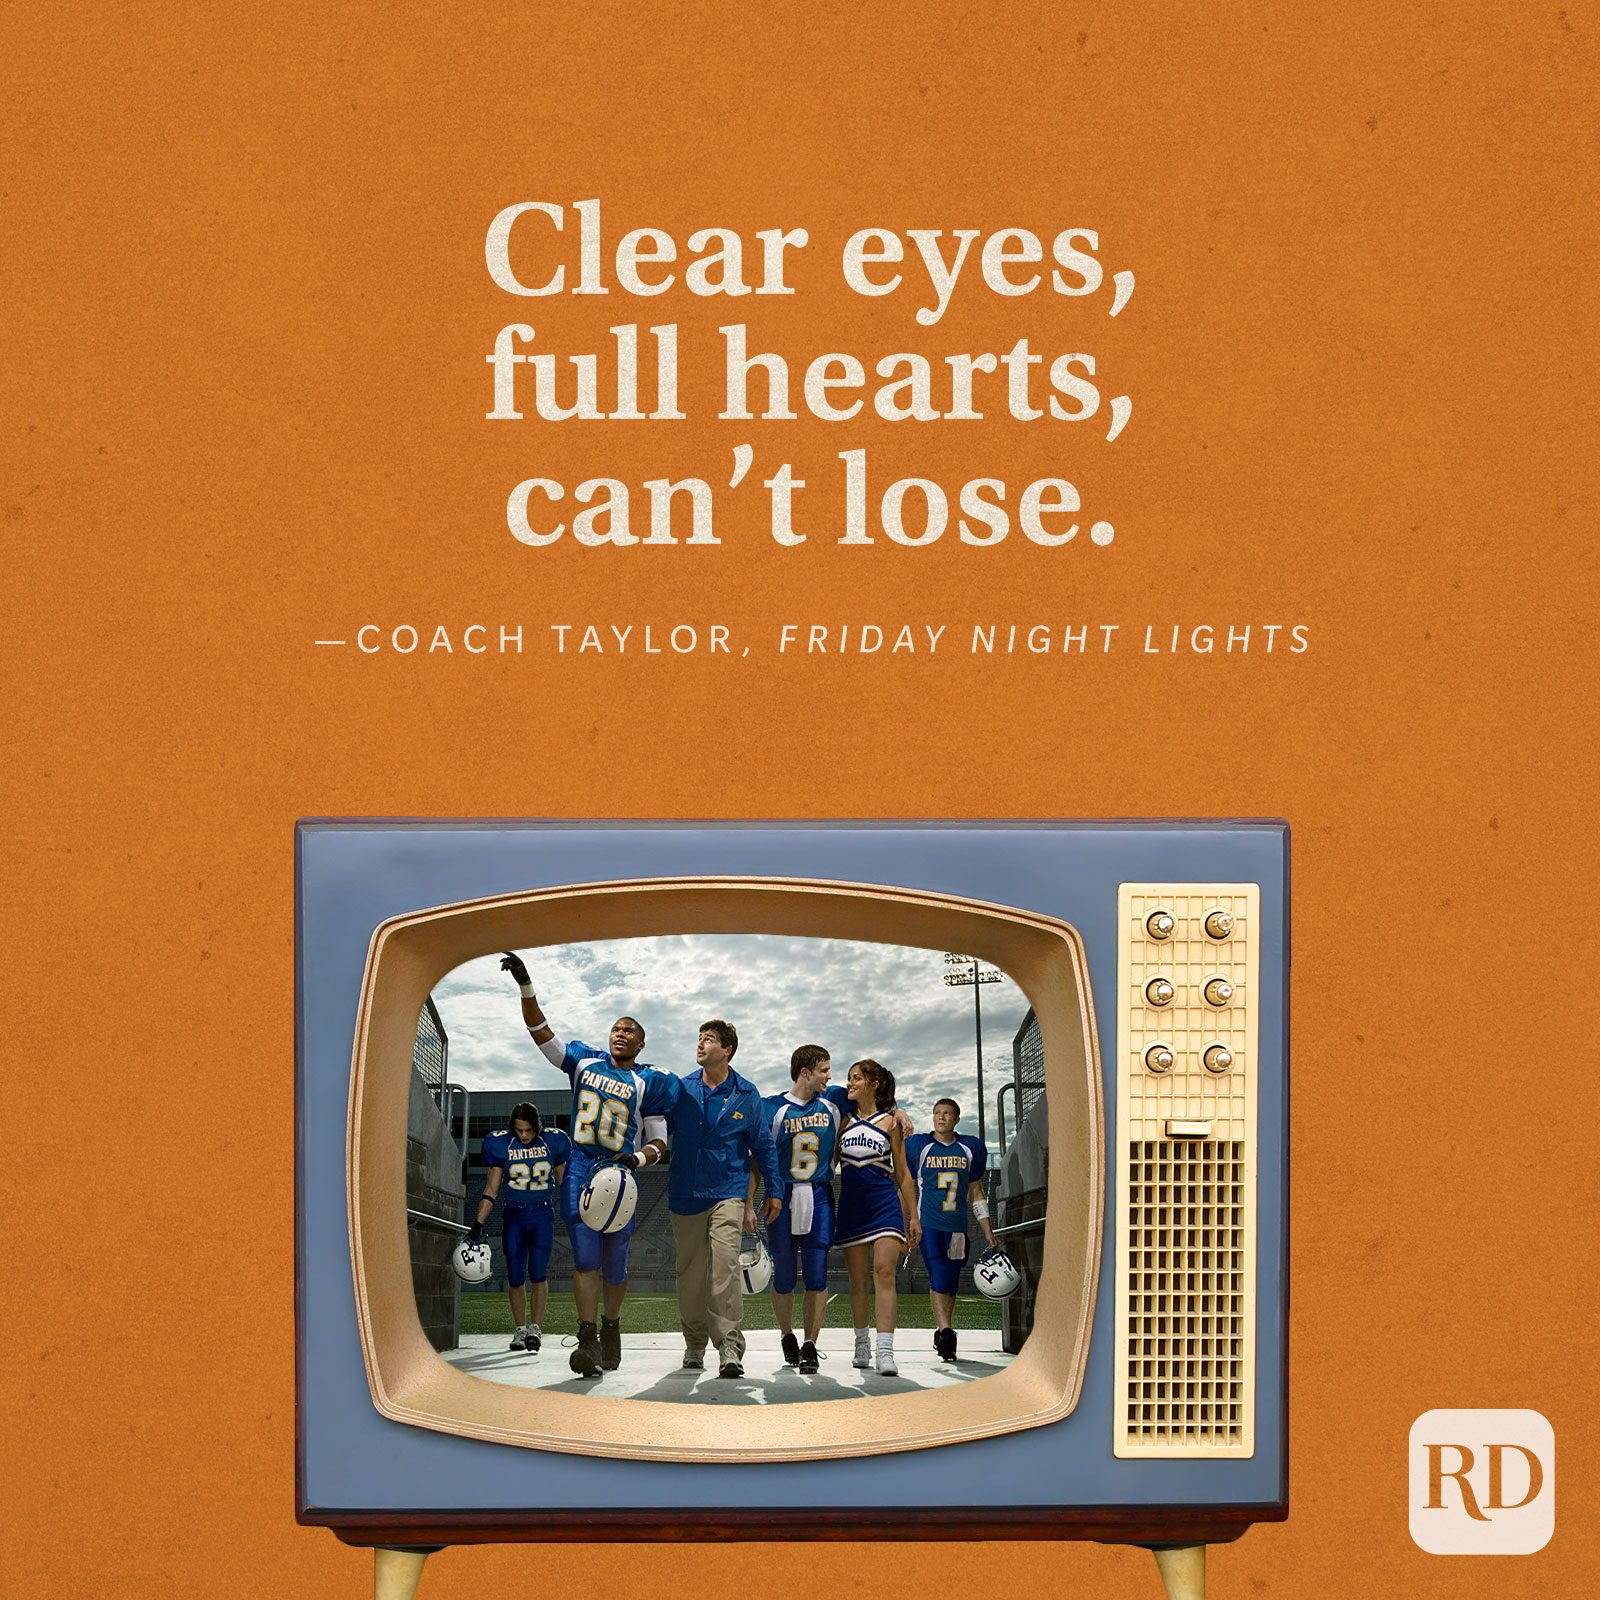 """""""Clear eyes, full hearts, can't lose."""" -Coach Taylor in Friday Night Lights."""